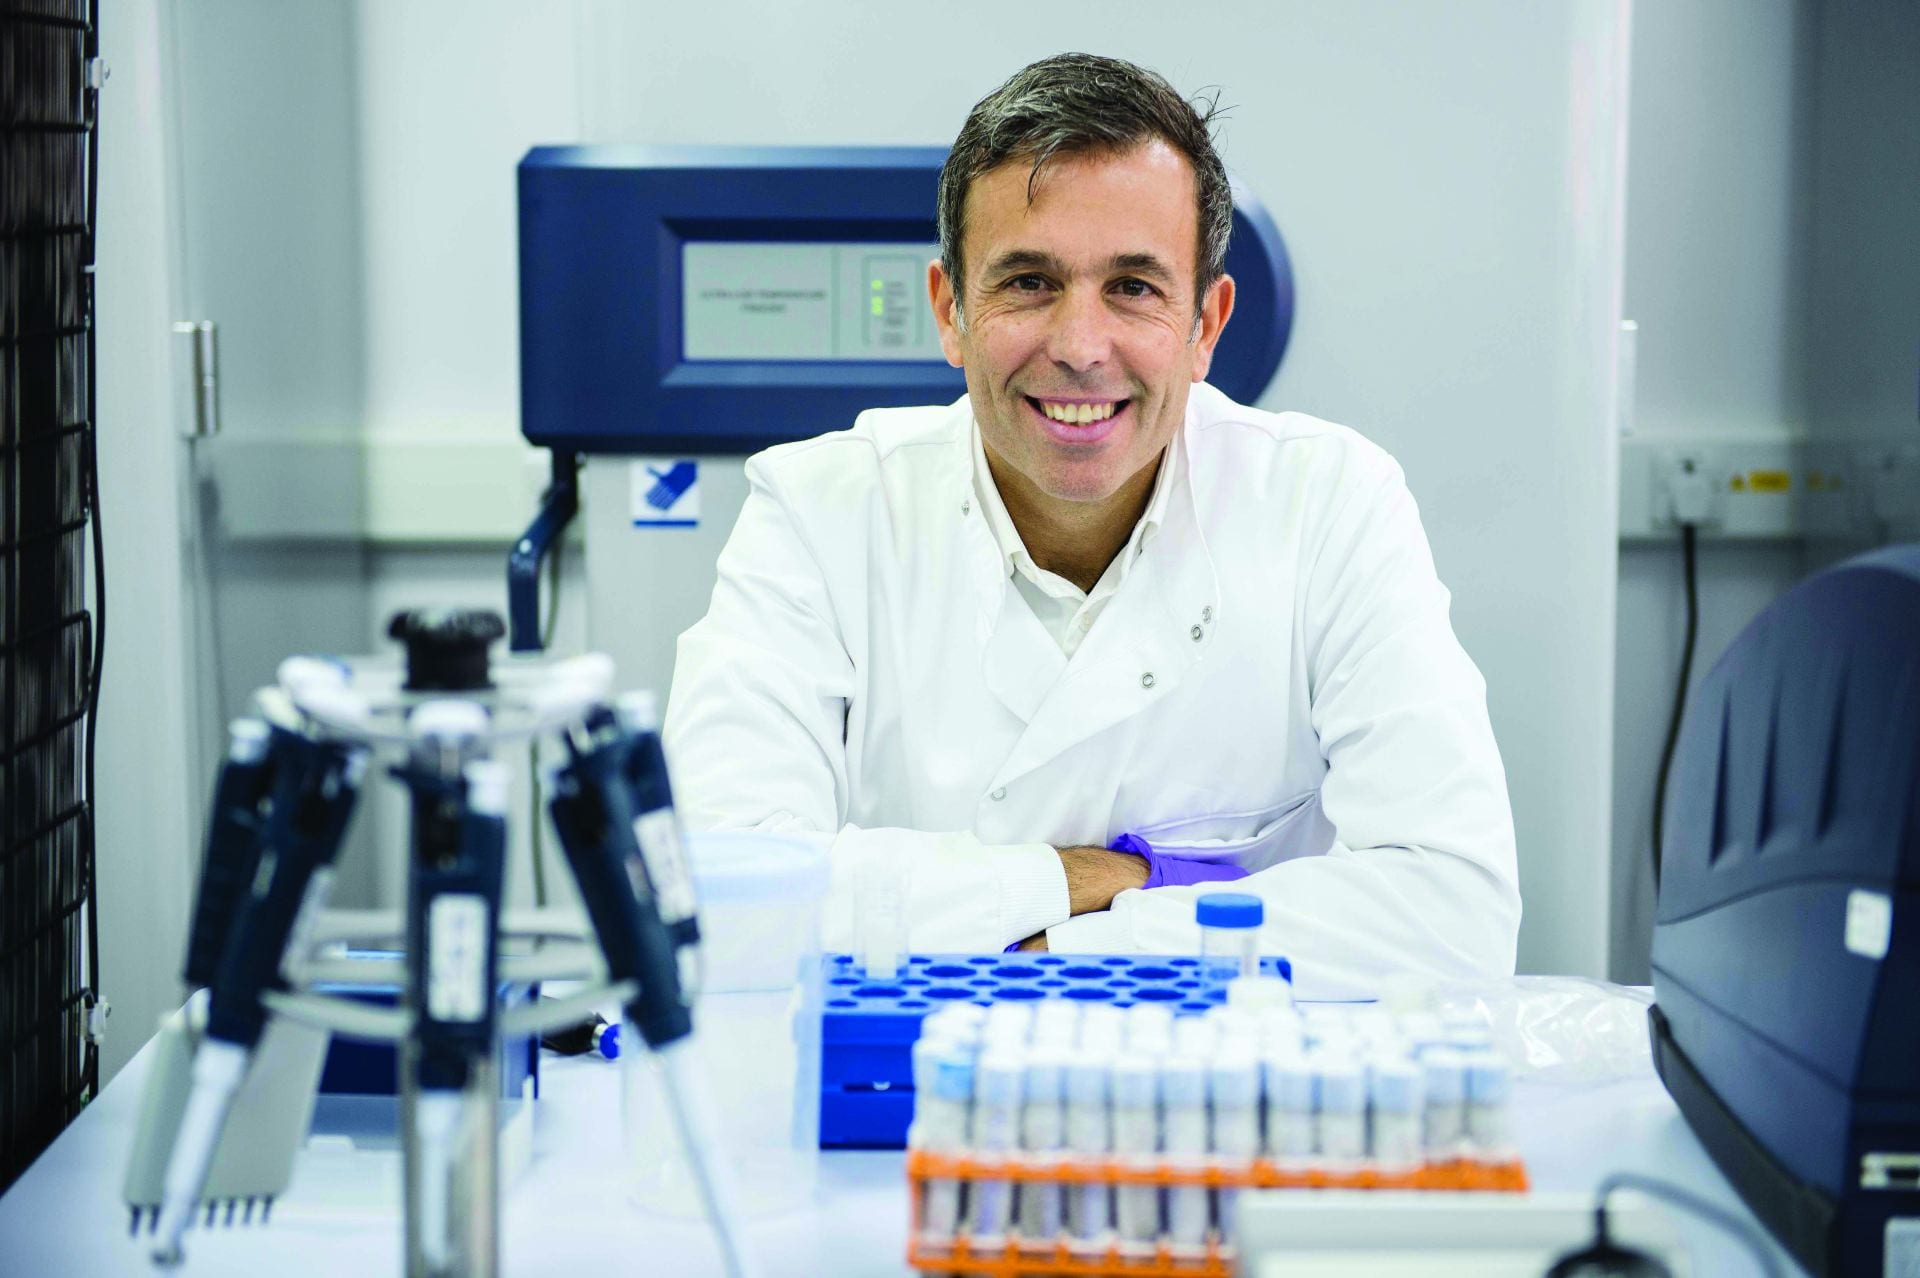 Professor Yannis Pitsiladis in his white coat in the labs